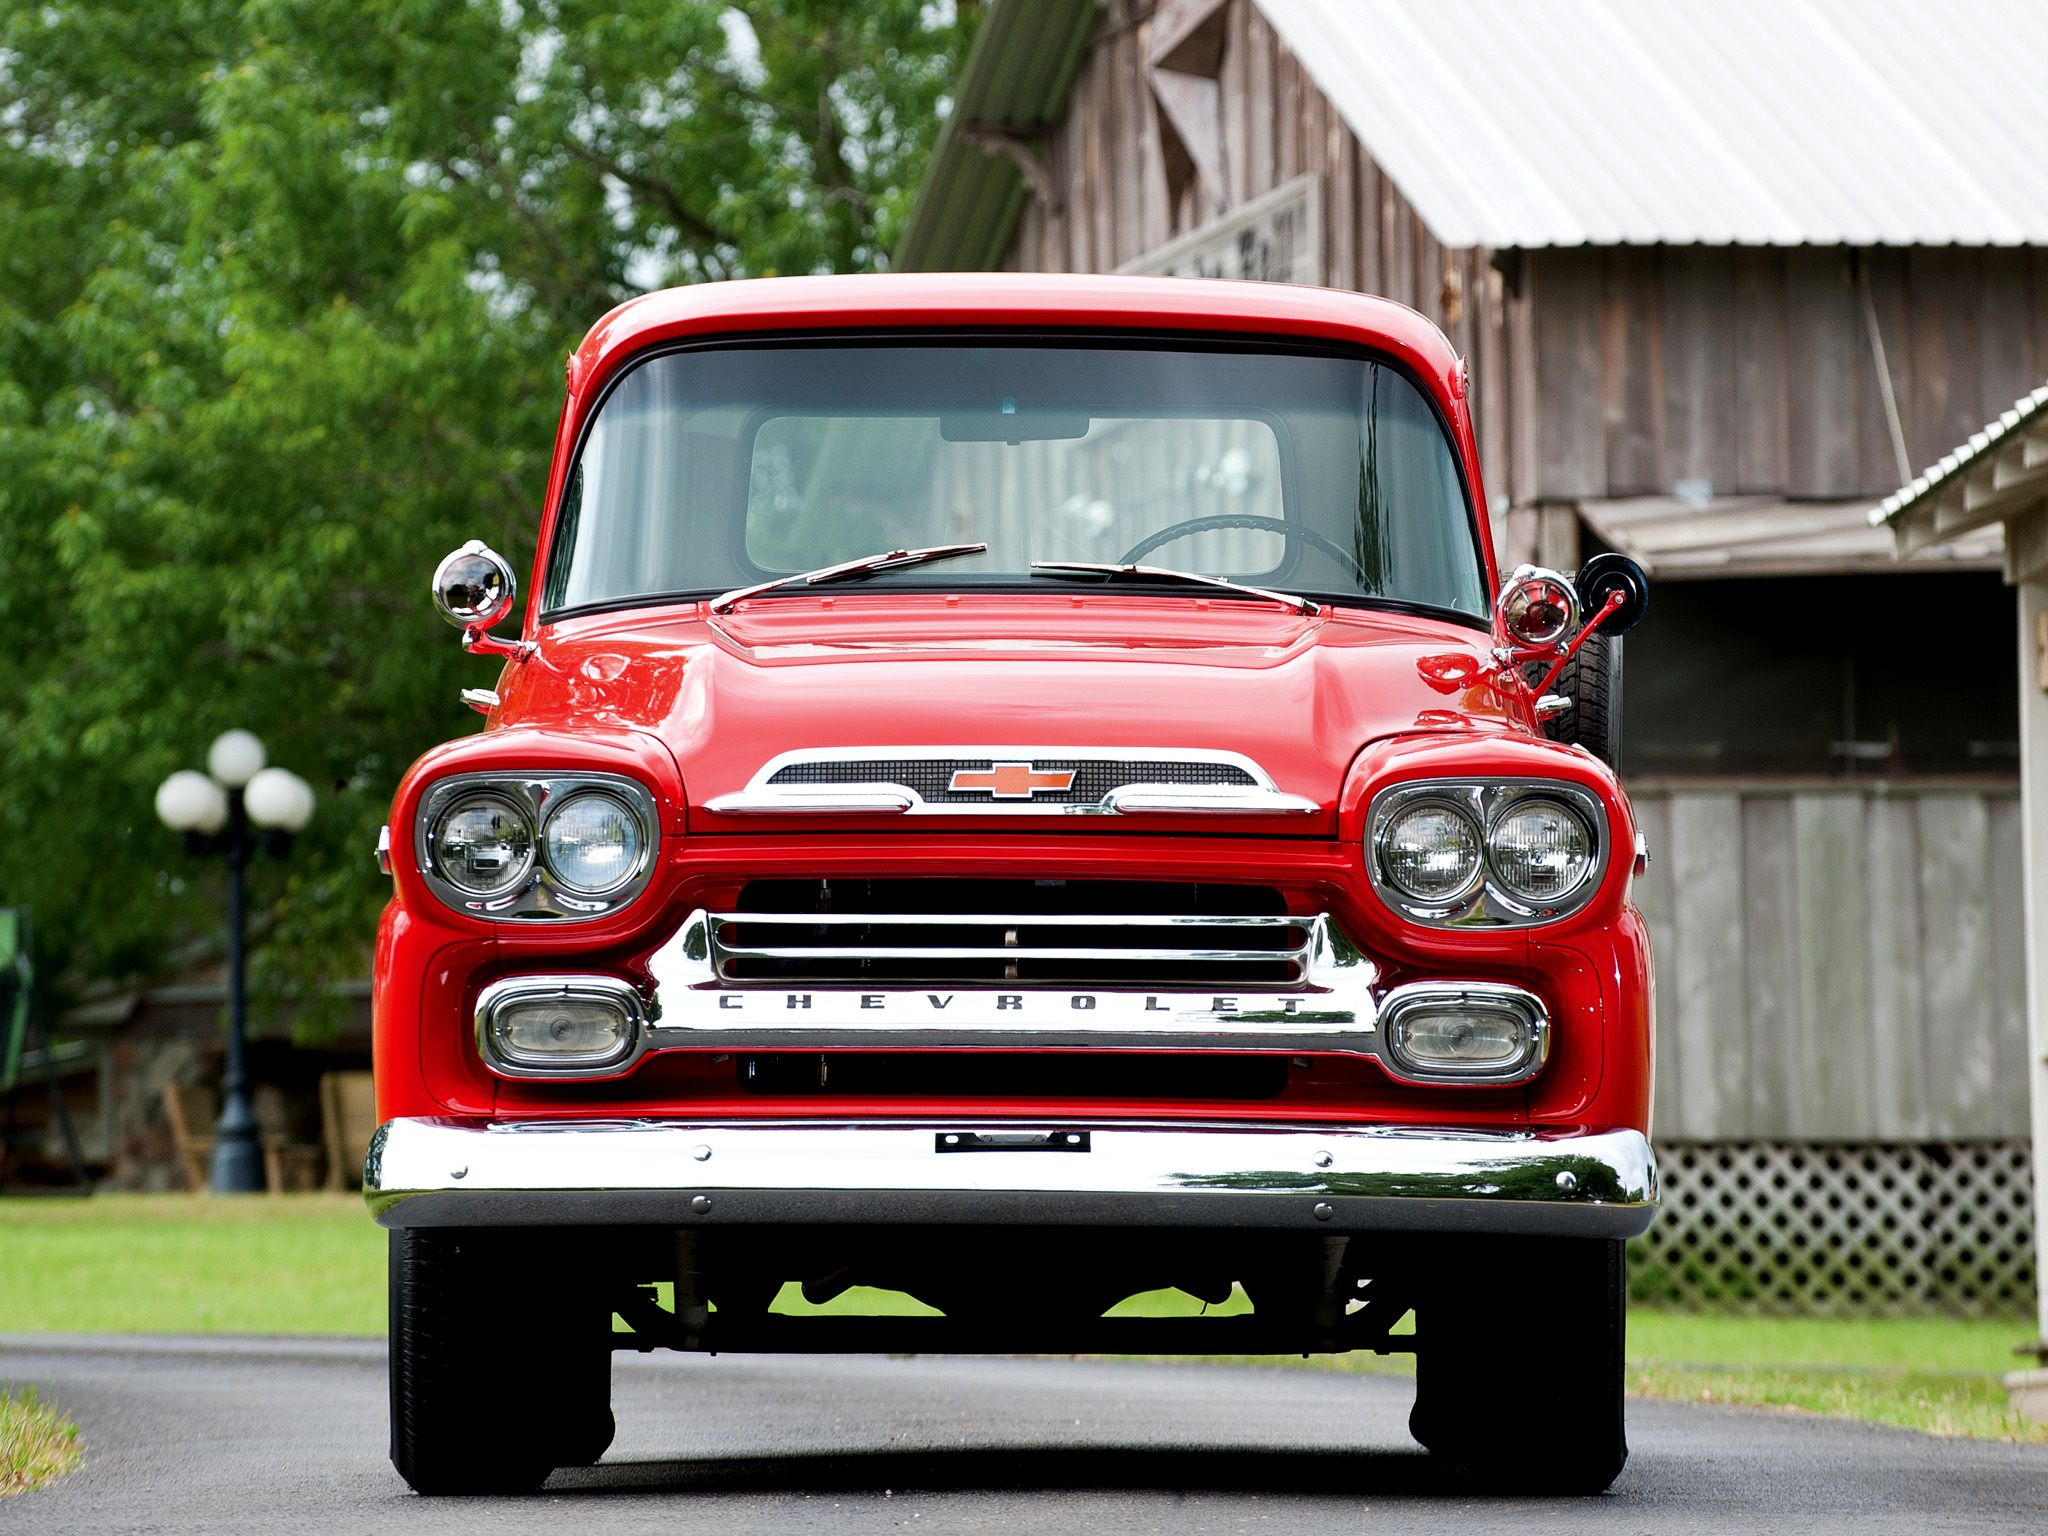 1959 Chevy Maintenance Restoration Of Old Vintage Vehicles The Material For New Cogs Casters Gears Pads C Classic Pickup Trucks Pickup Trucks Chevrolet Trucks